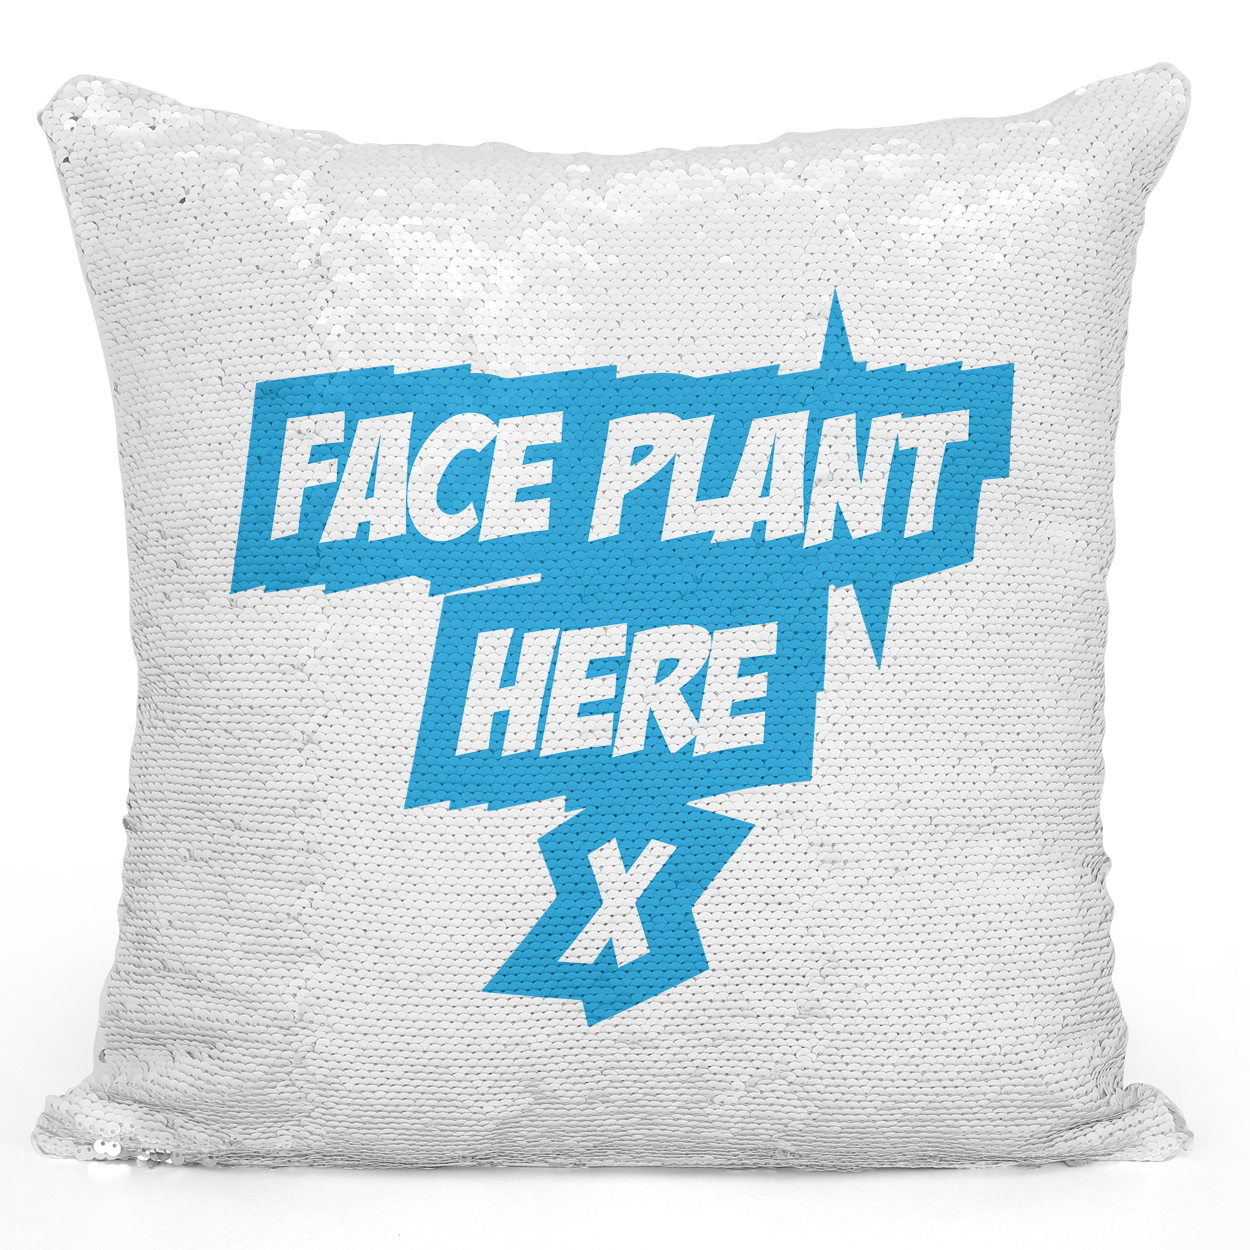 16x16 inch Sequin Throw Pillow Magic Flip Pillow Face Plant Here Funny Pillow Loud Universe